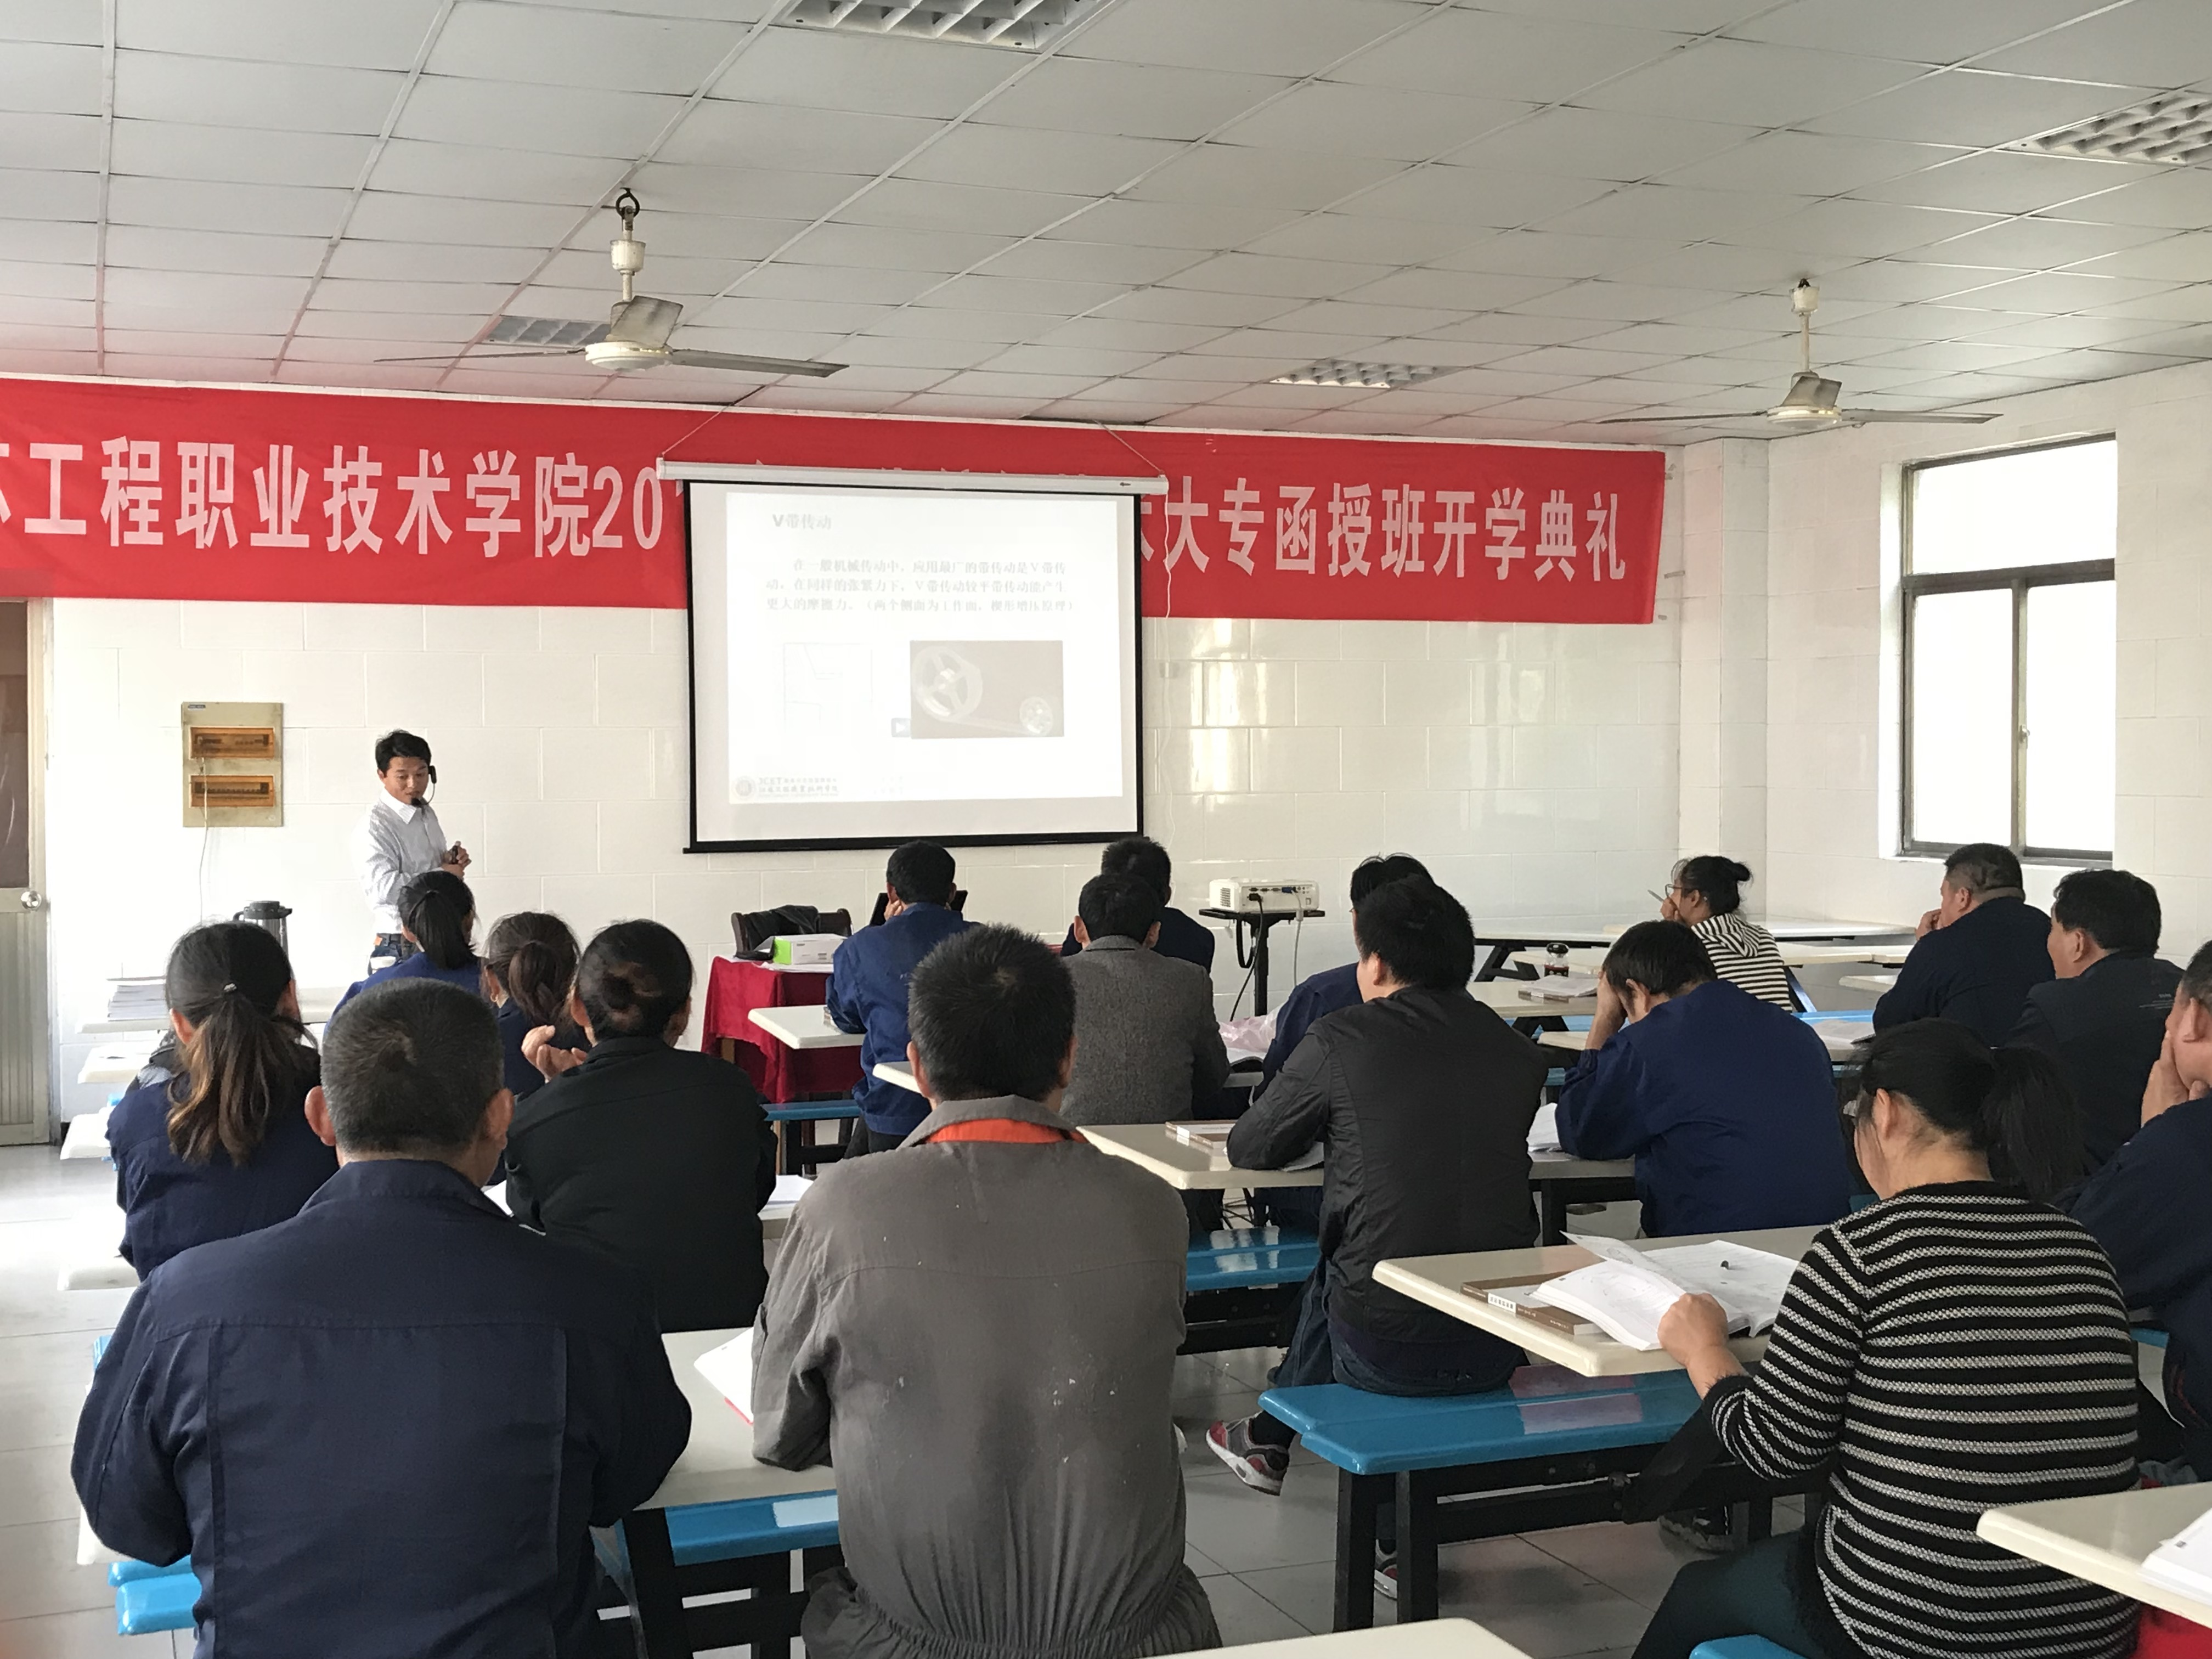 Jiangsu Engineering Vocational and Technical College sent experts and professors to our company to carry out professional training for employees